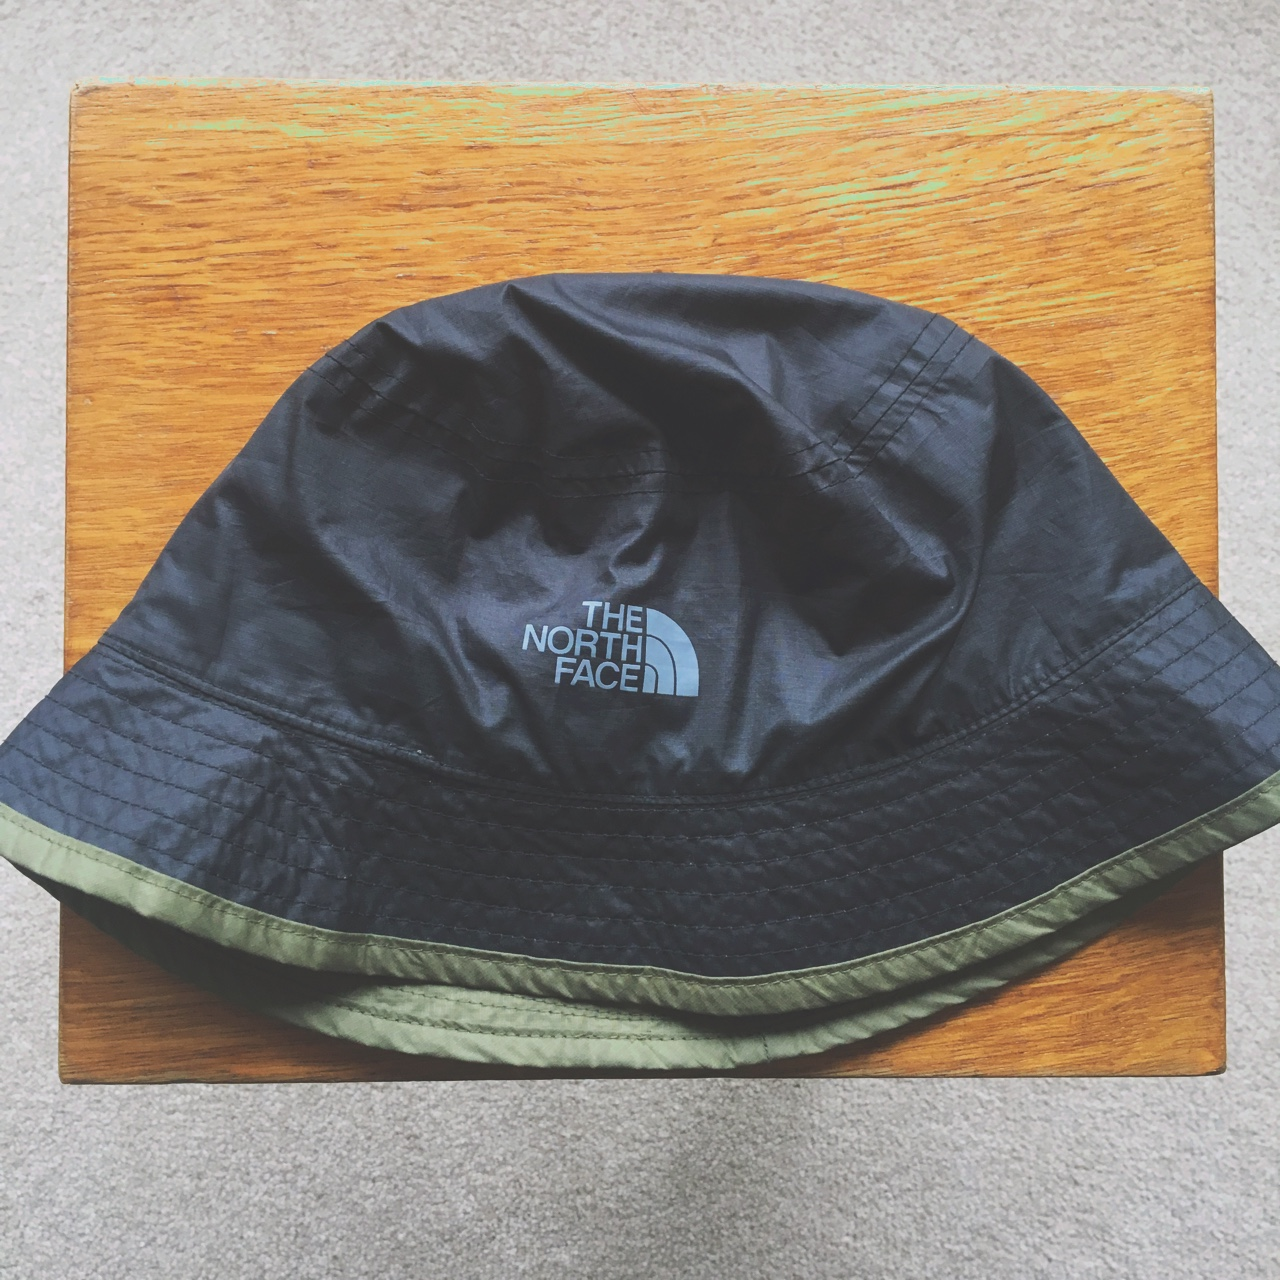 767d67da3 The North Face Bucket Hat (Reversible) - Black and... - Depop